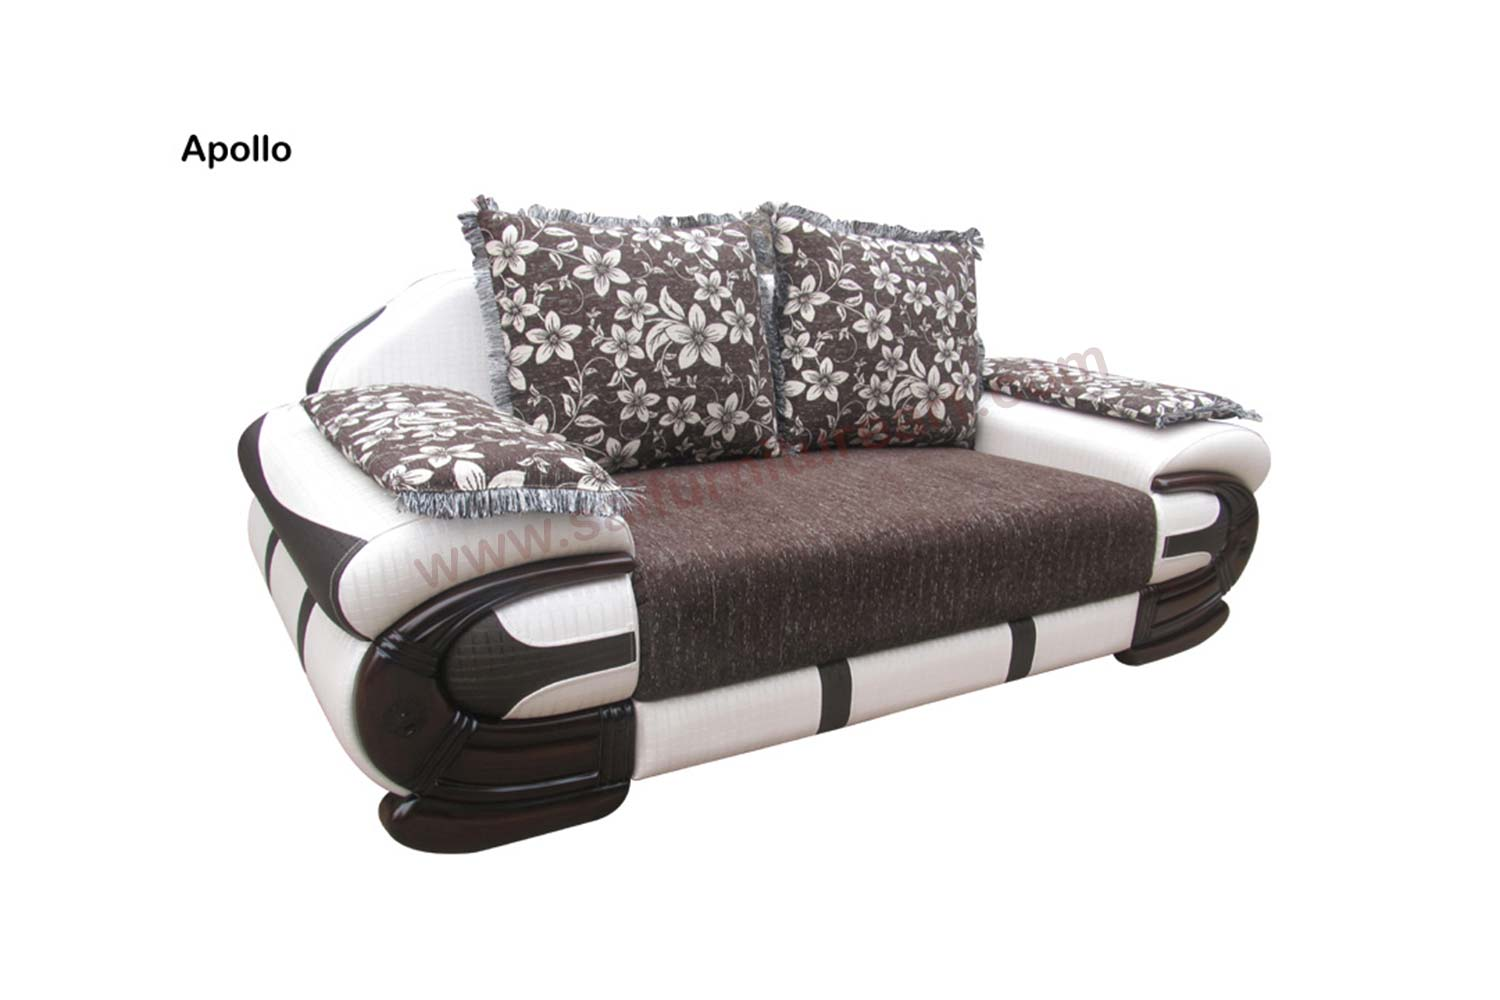 Recliner Sofa Kirti Nagar Apollo Sofa